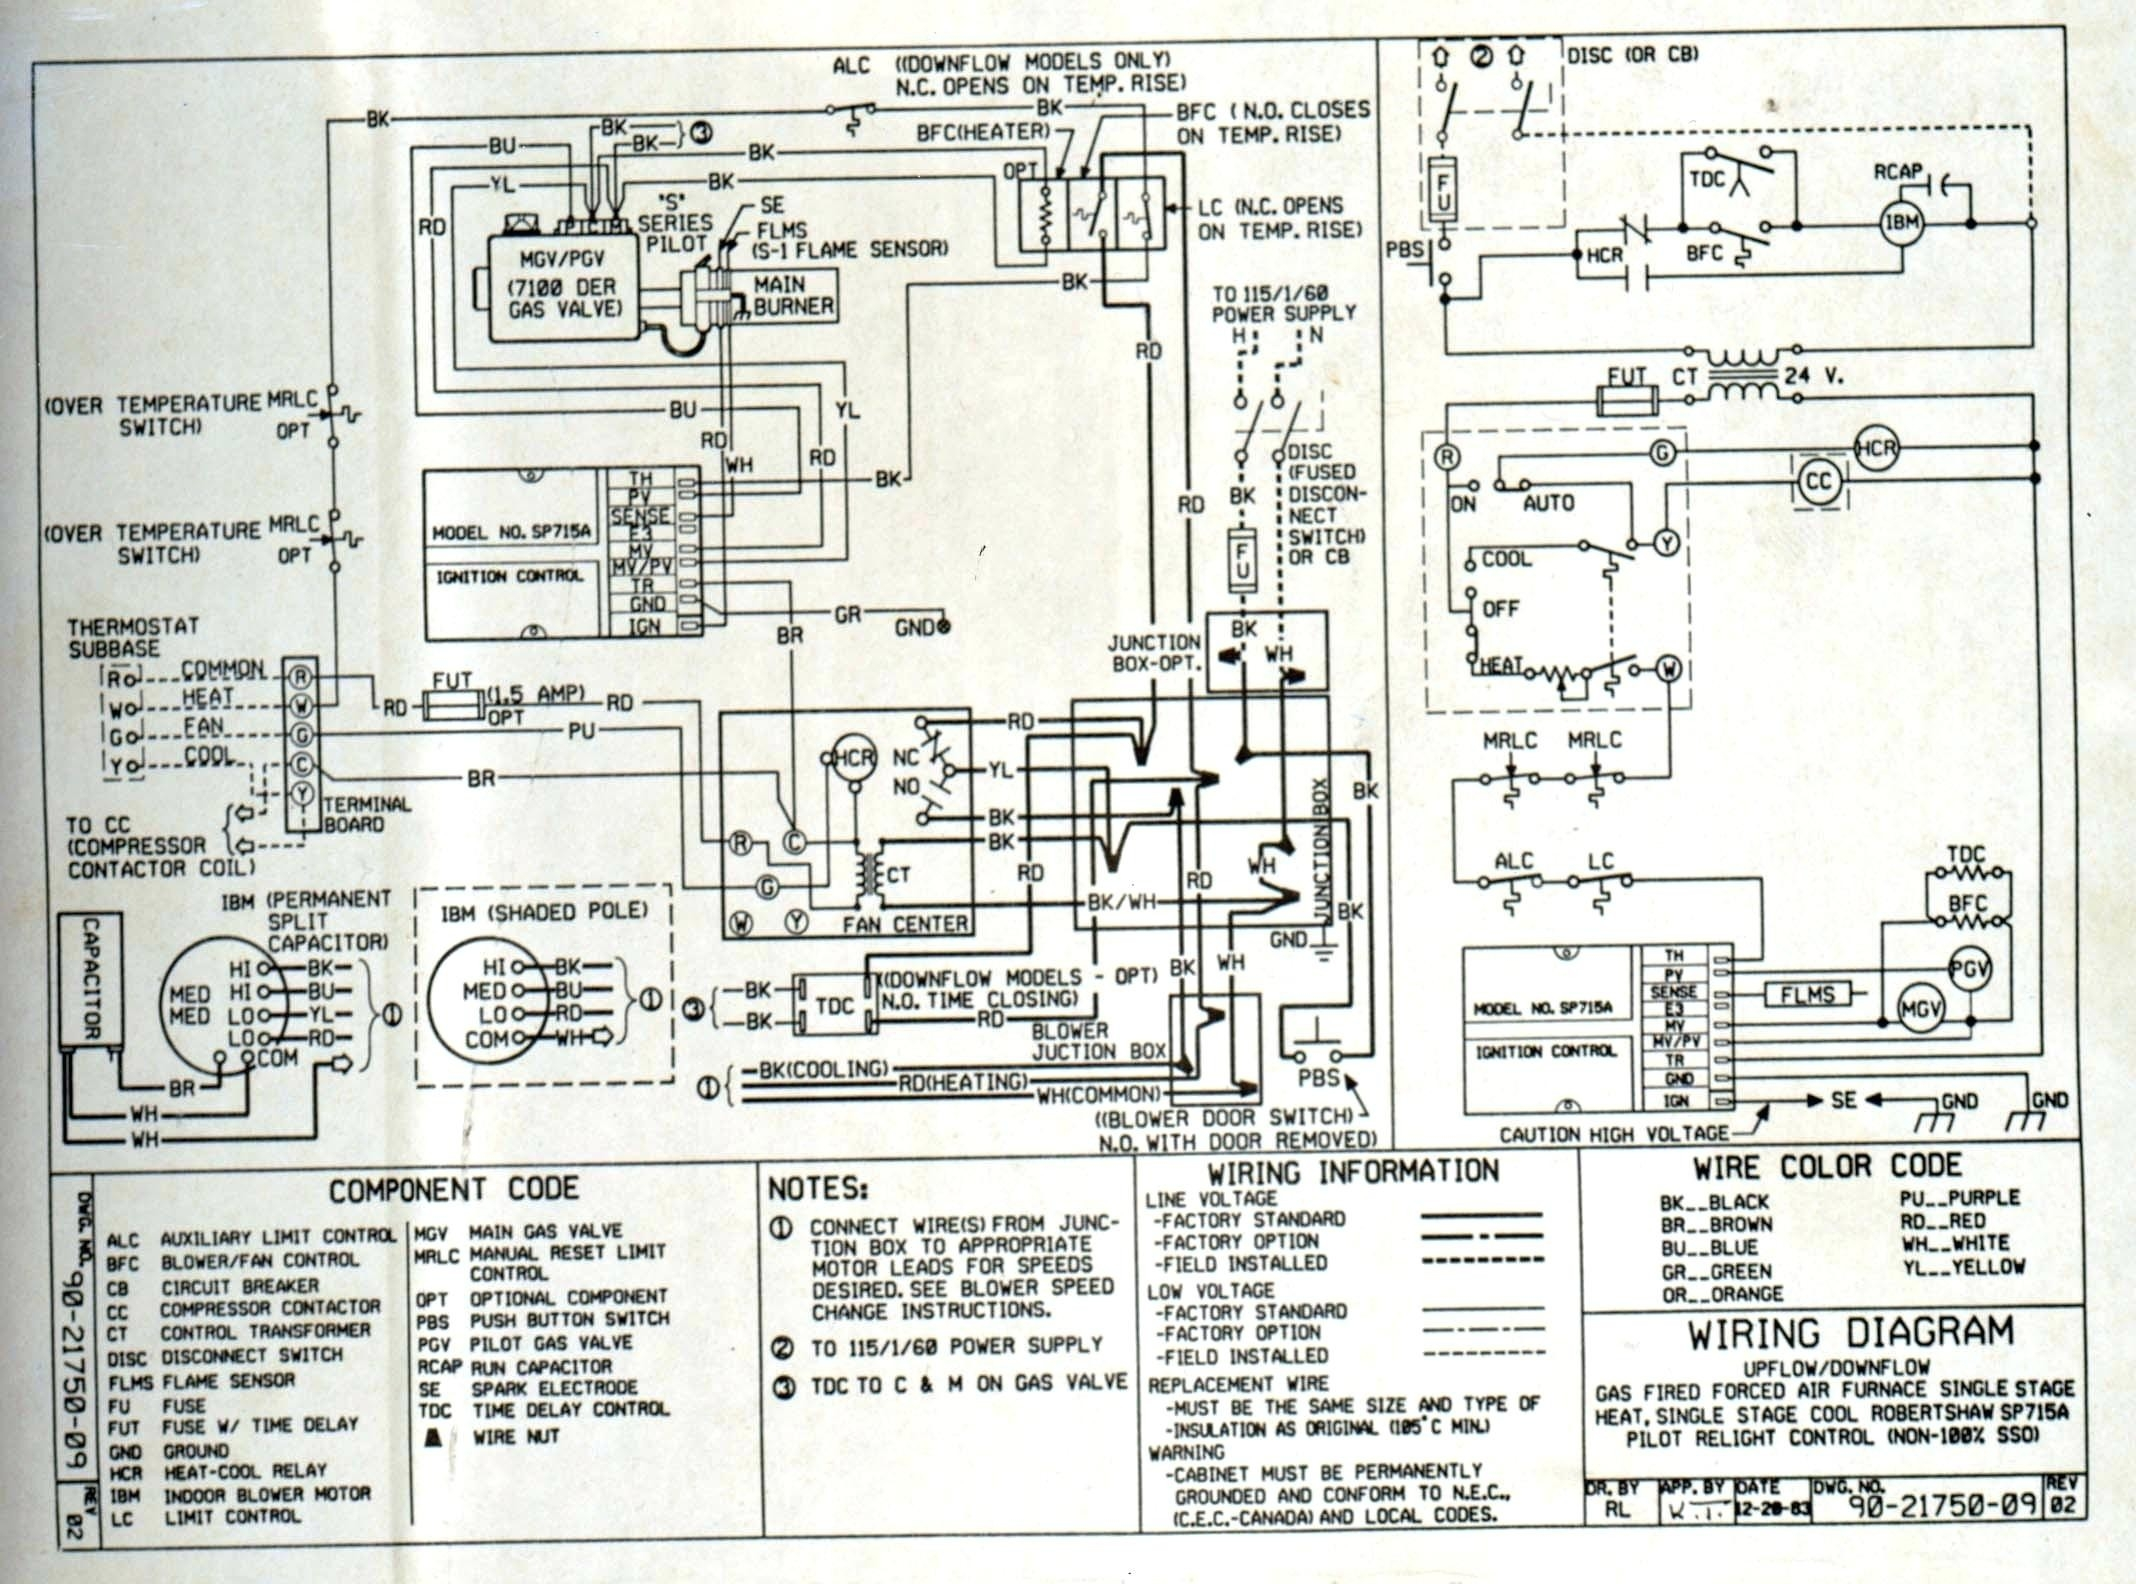 electric heat furnace wiring diagram Download-Armstrong Electric Furnace Wiring Diagram Best York Furnace Wiring Diagram Wiring Circuit • 1-h